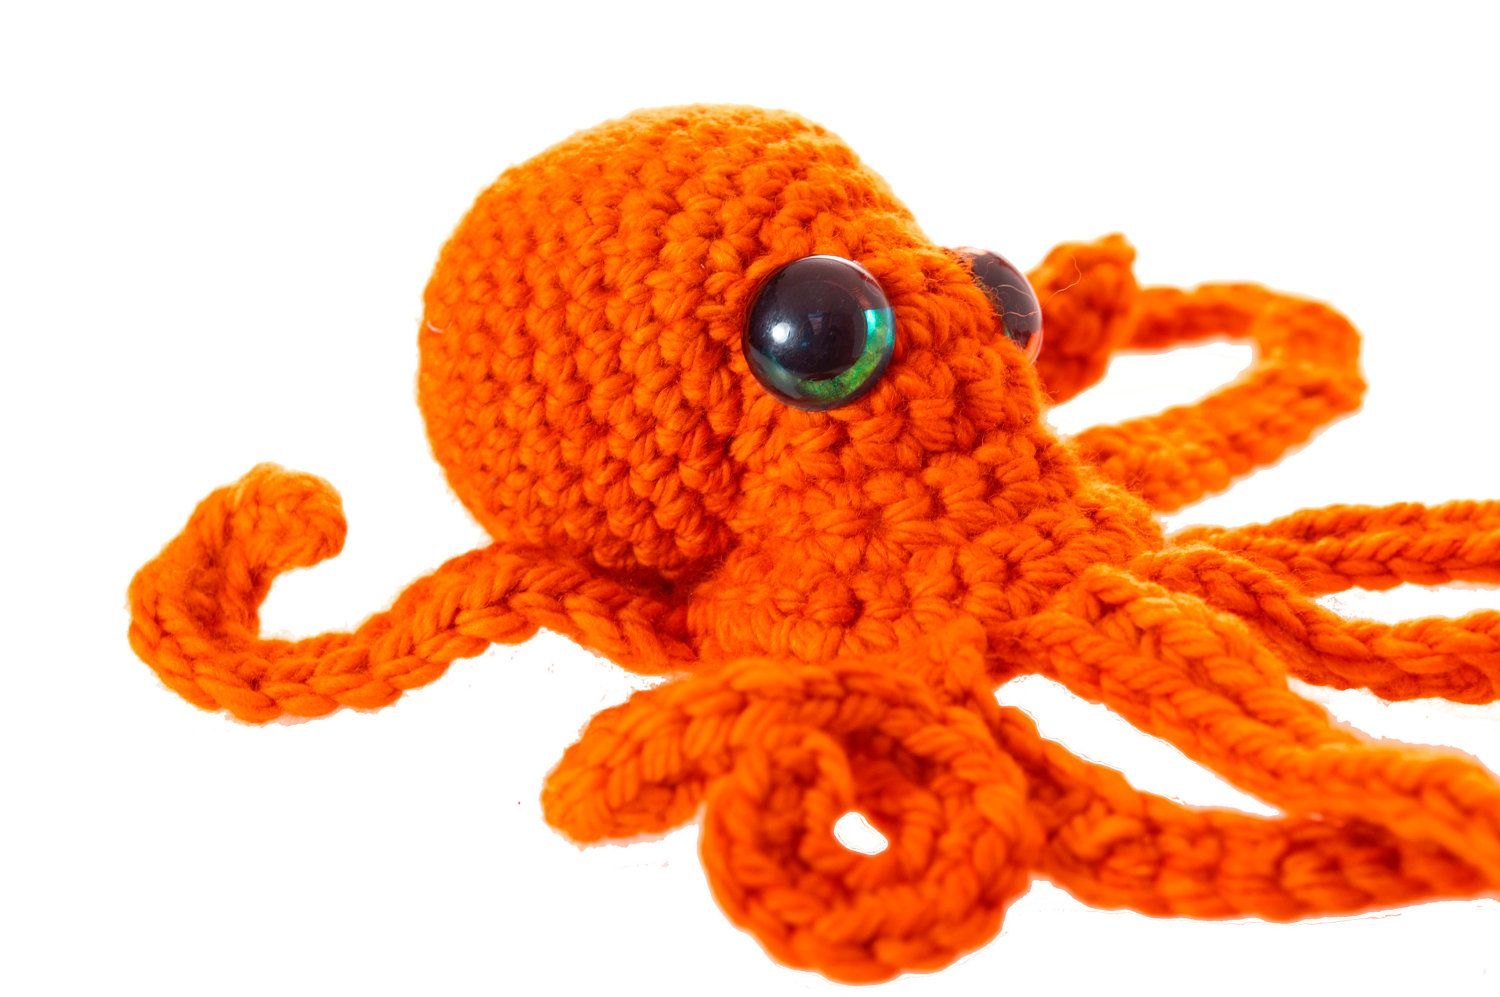 Crochet a Giant Octopus Amigurumi – So Fun and the Pattern is FREE ... | 997x1500